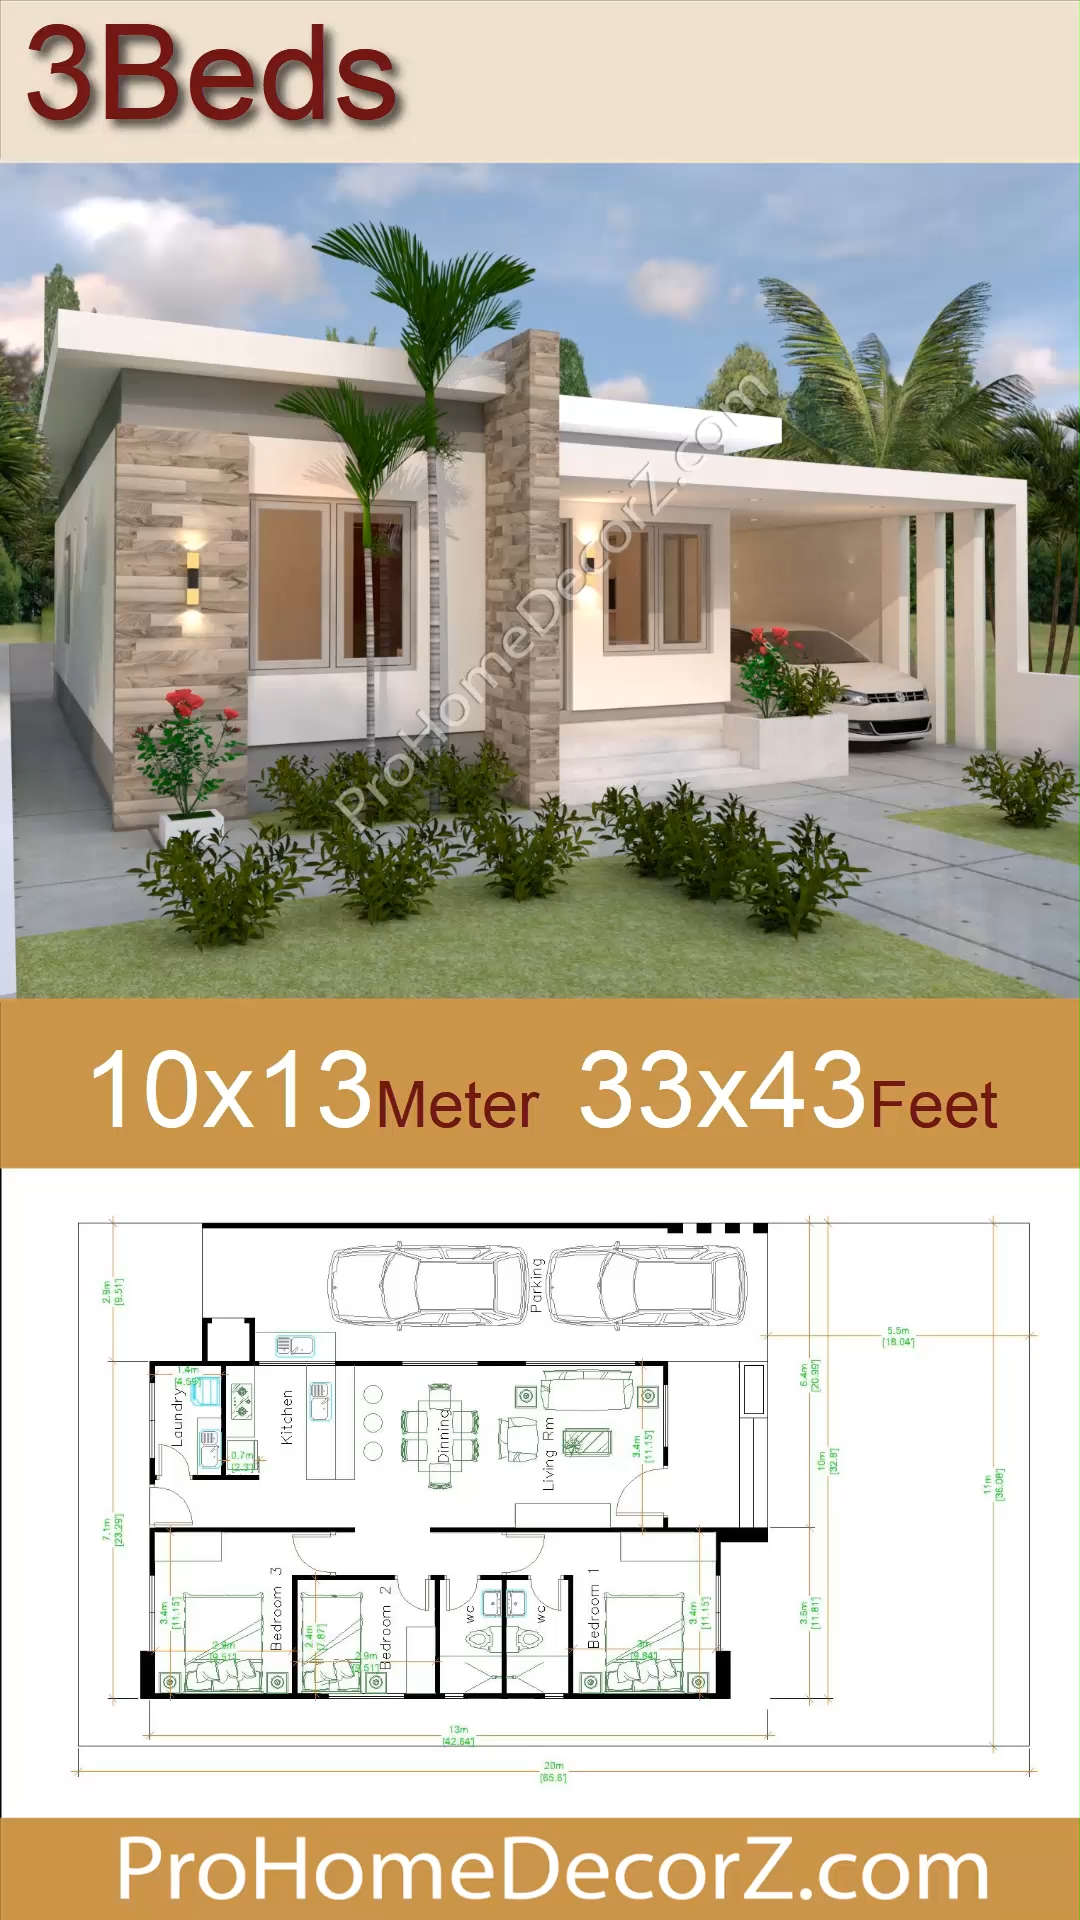 Photo of House Layout Design 10×13 Meter 33×43 Feet 3 Beds